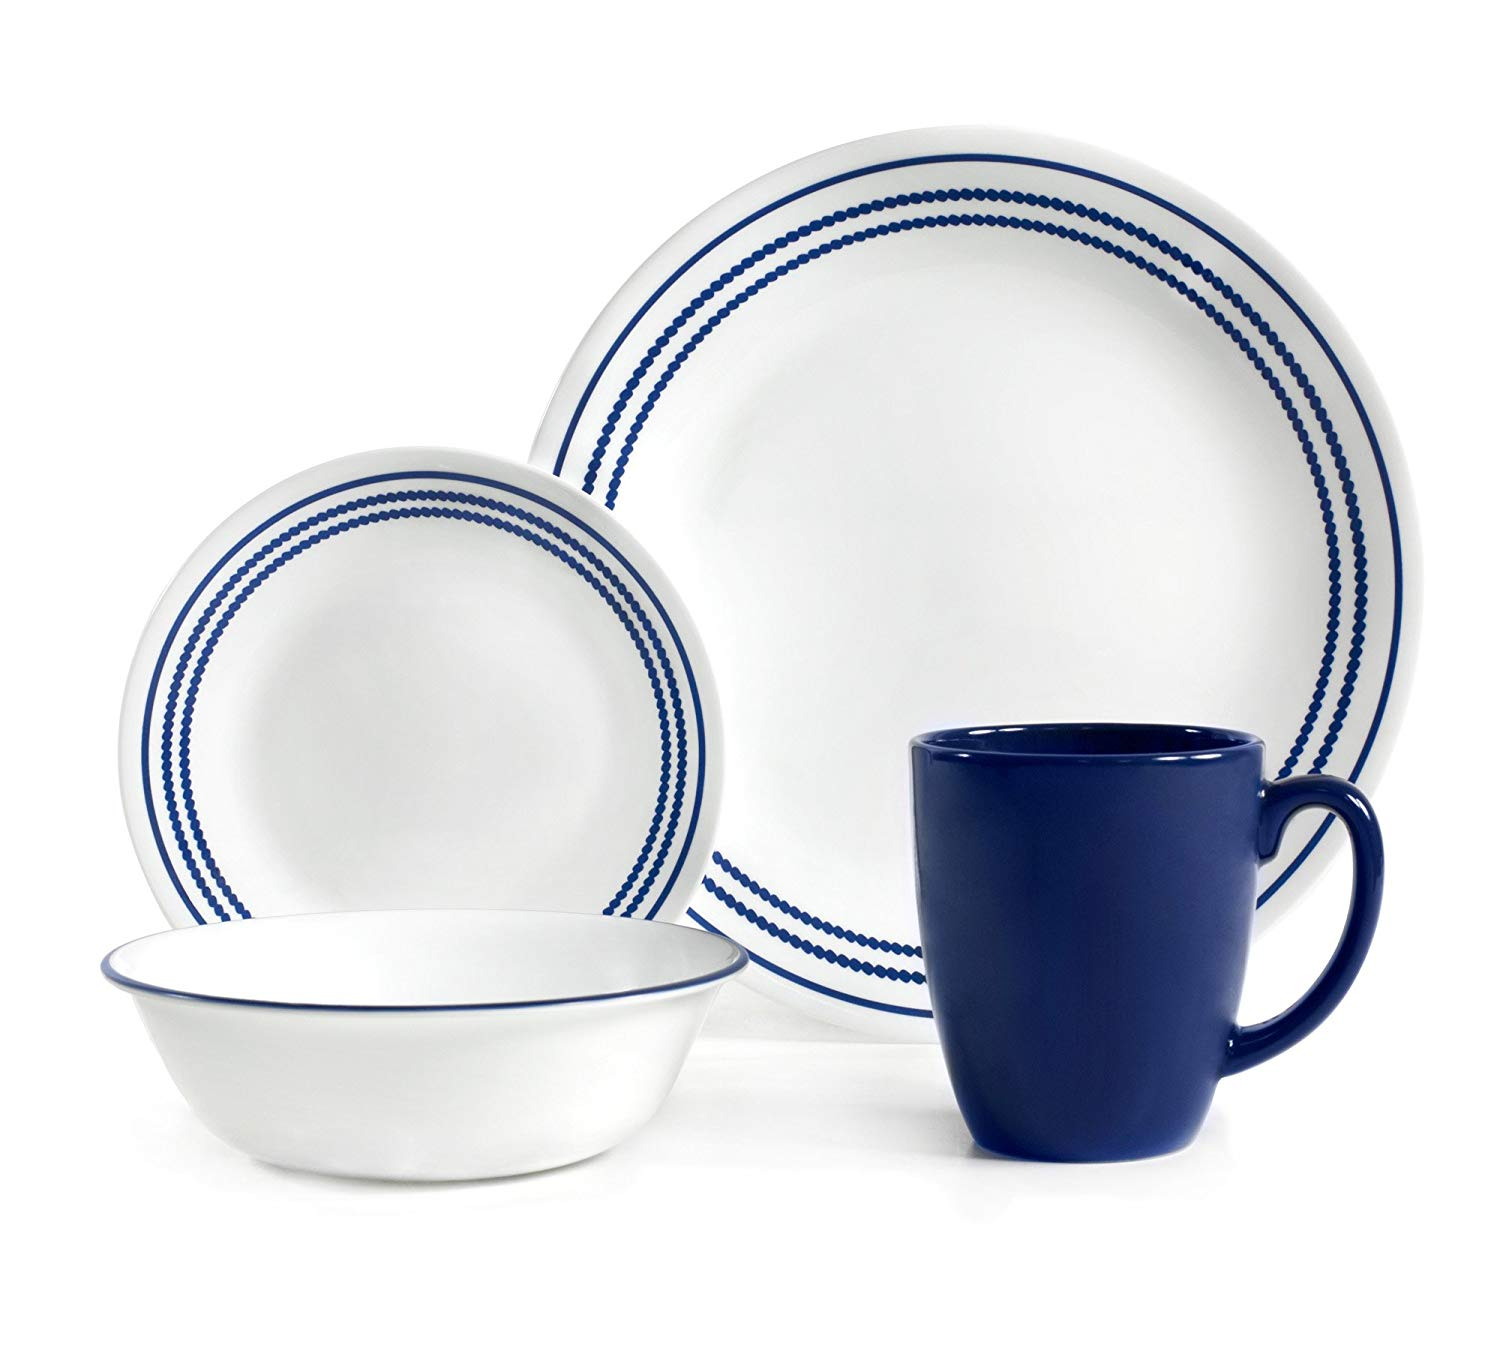 delightful Corelle Luncheon Plates Open Stock Part - 13: Get Quotations · Corelle Livingware 16 Piece Set Jett Blue, Service for 4,  includes 4each of 10.25